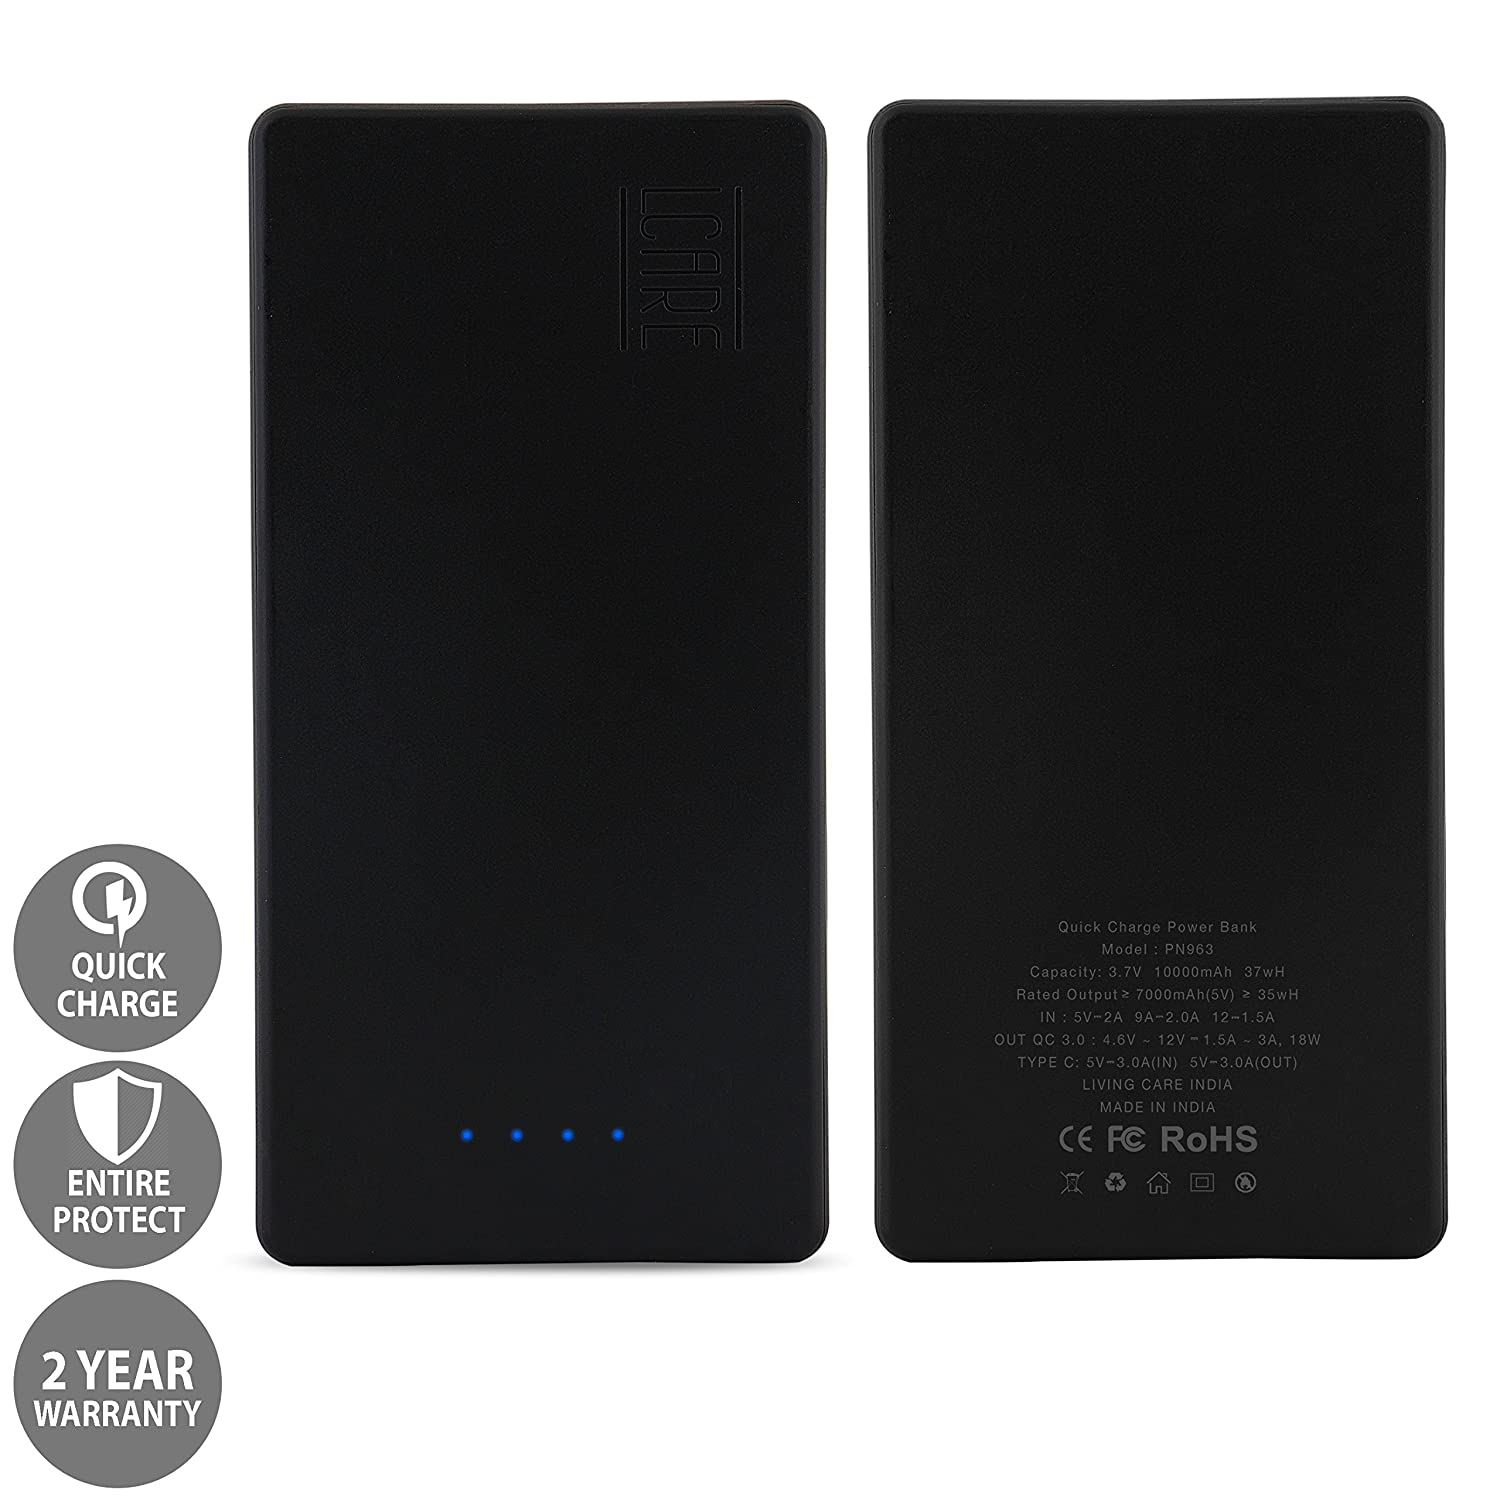 LCARE QC 30 POWER BANK 10000mAh with